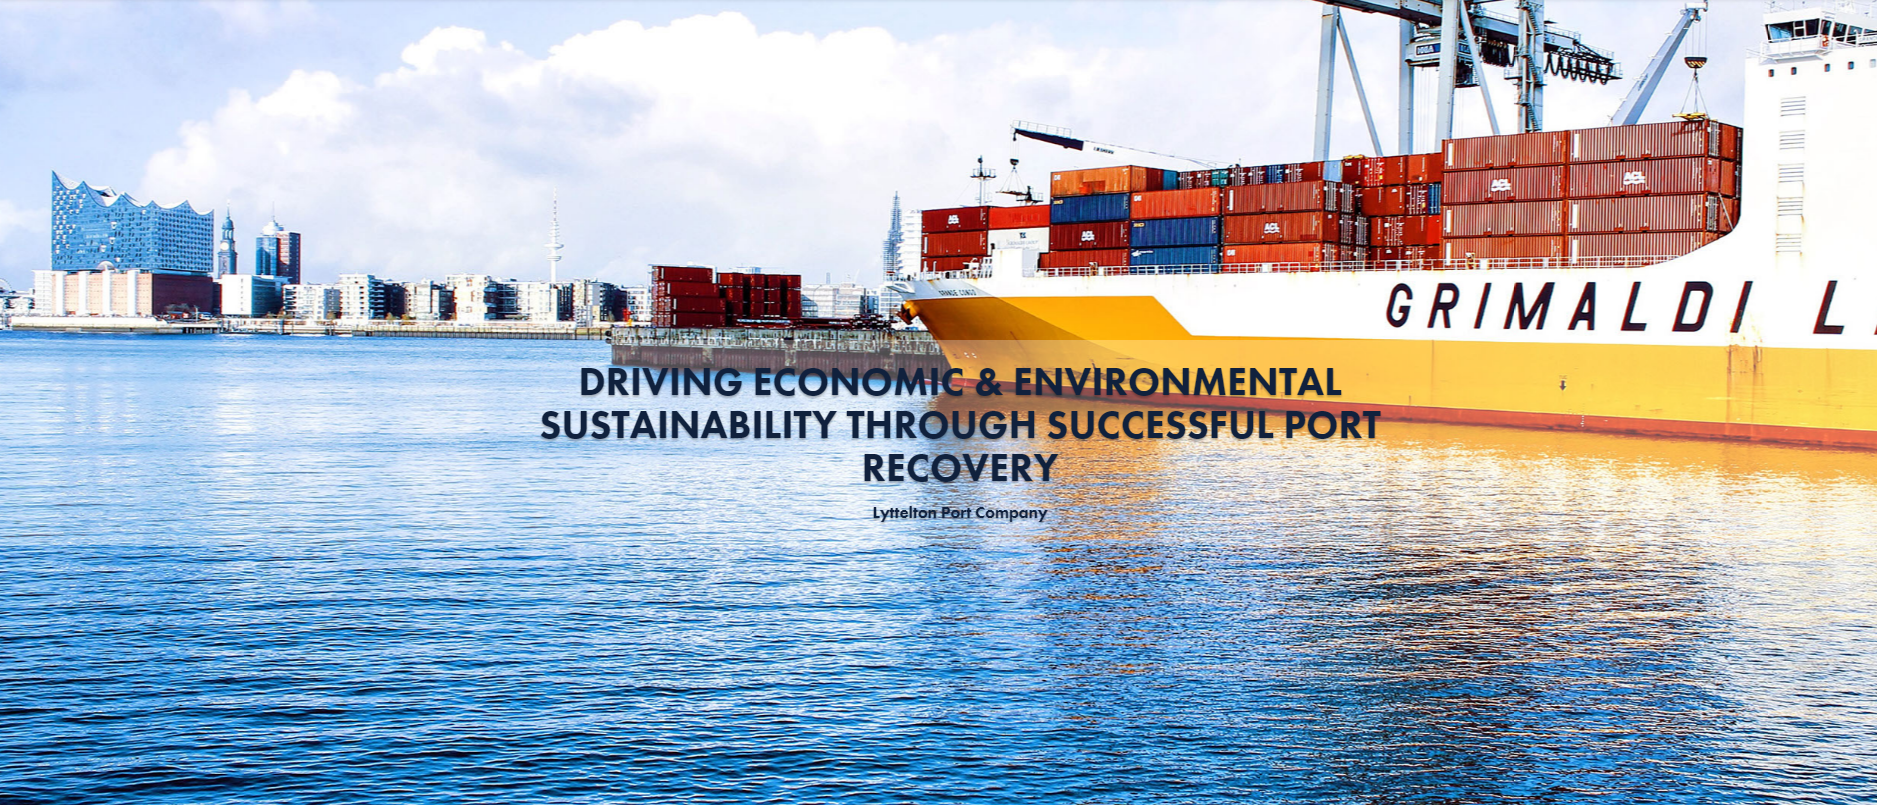 Driving Economic & Environmental Sustainability Through Successful Port Recovery